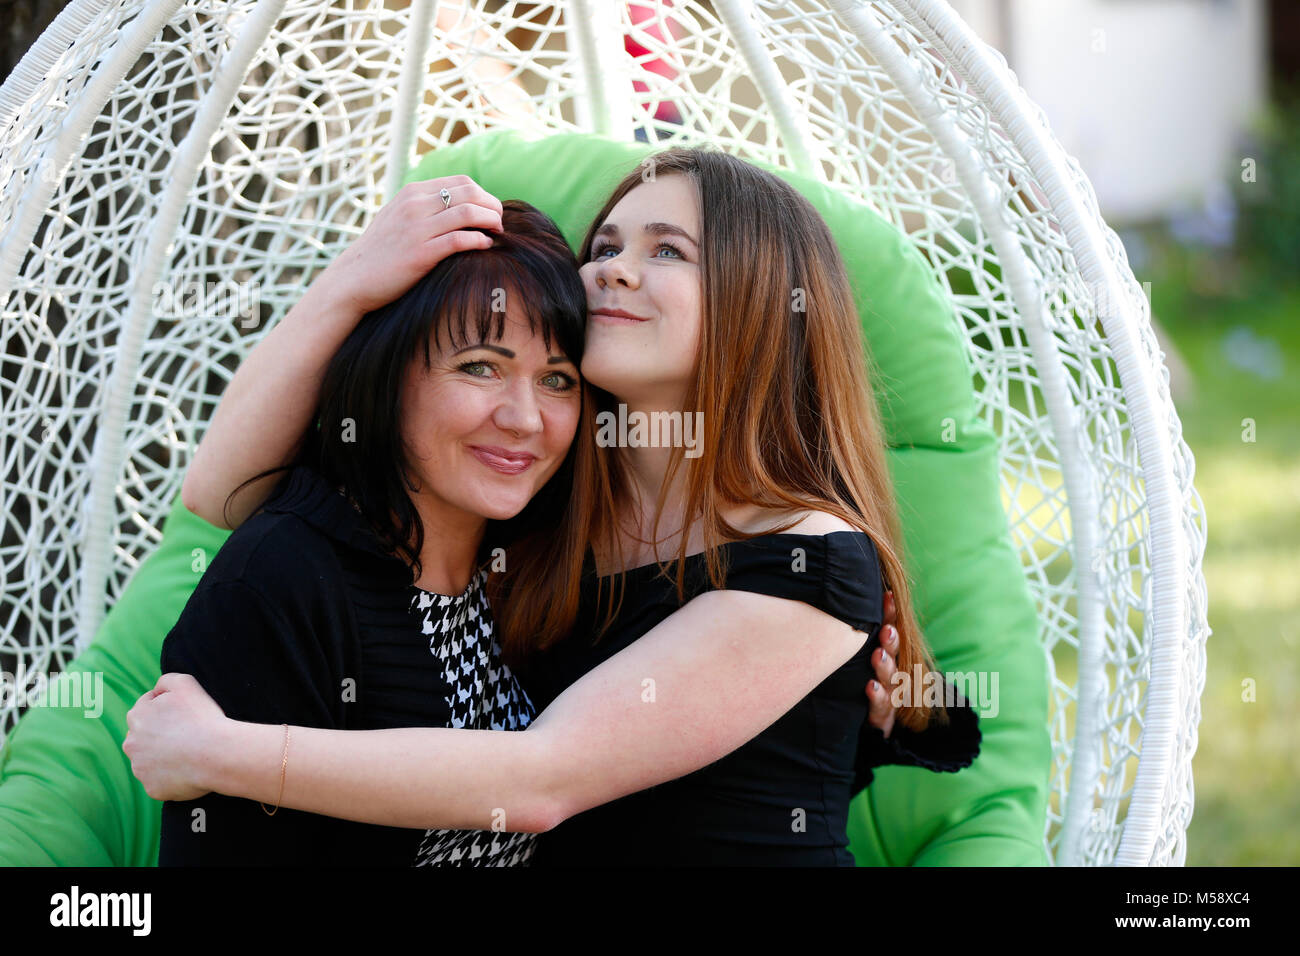 Belarus, the city of Gomel, June 15, 2017. Chabarok restaurant, birthday celebration project new style. Adult daughter - Stock Image